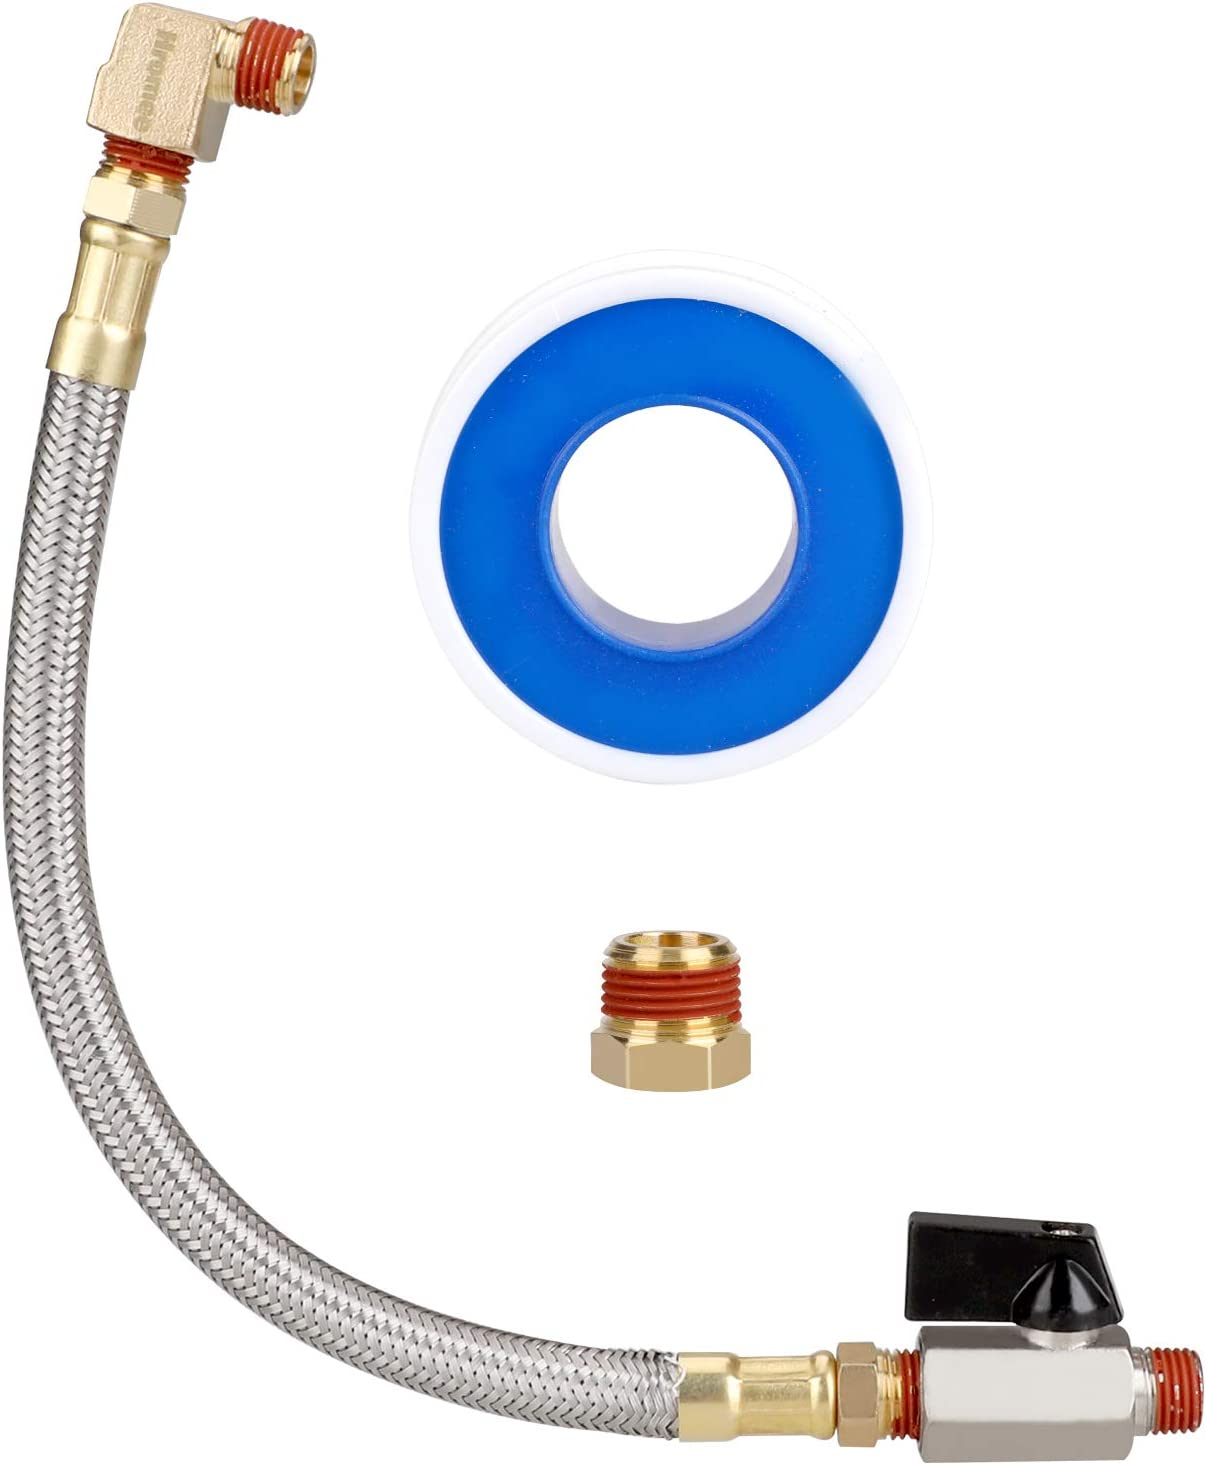 Hromee Extended Tank Drain Valve Assembly Kit with 10 Inch Flexible Braided Steel Tube 1//4 Inch NPT Shut-Off Ball Valve 90 Degree Brass Elbow Pipe Fitting and Thread Seal Tape for Air Compressor